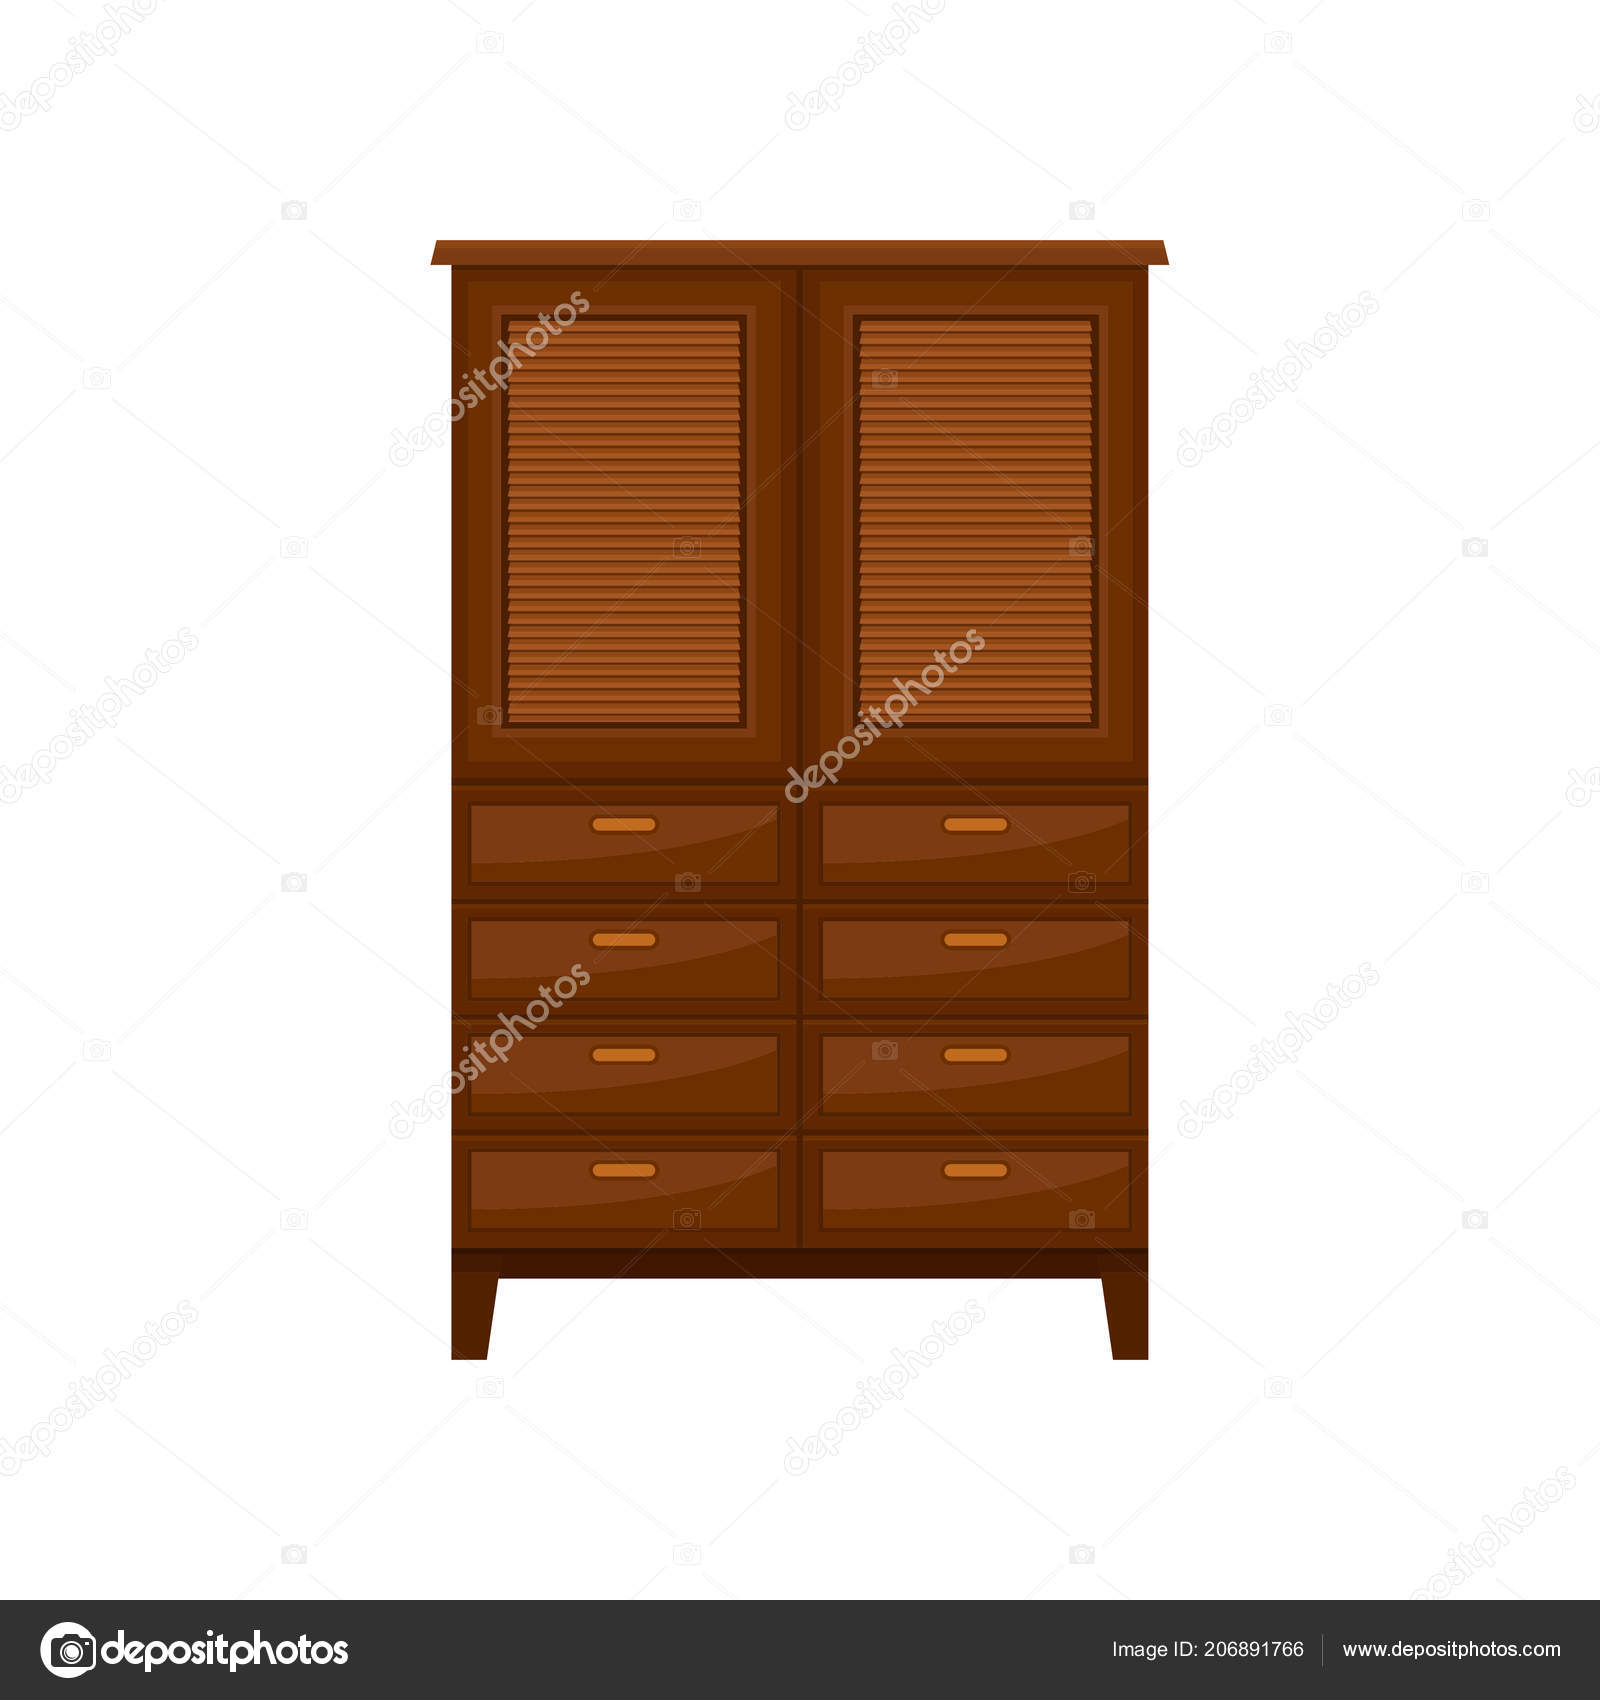 Brown wardrobe interior design element vector illustration isolated on a white background vector by happypictures